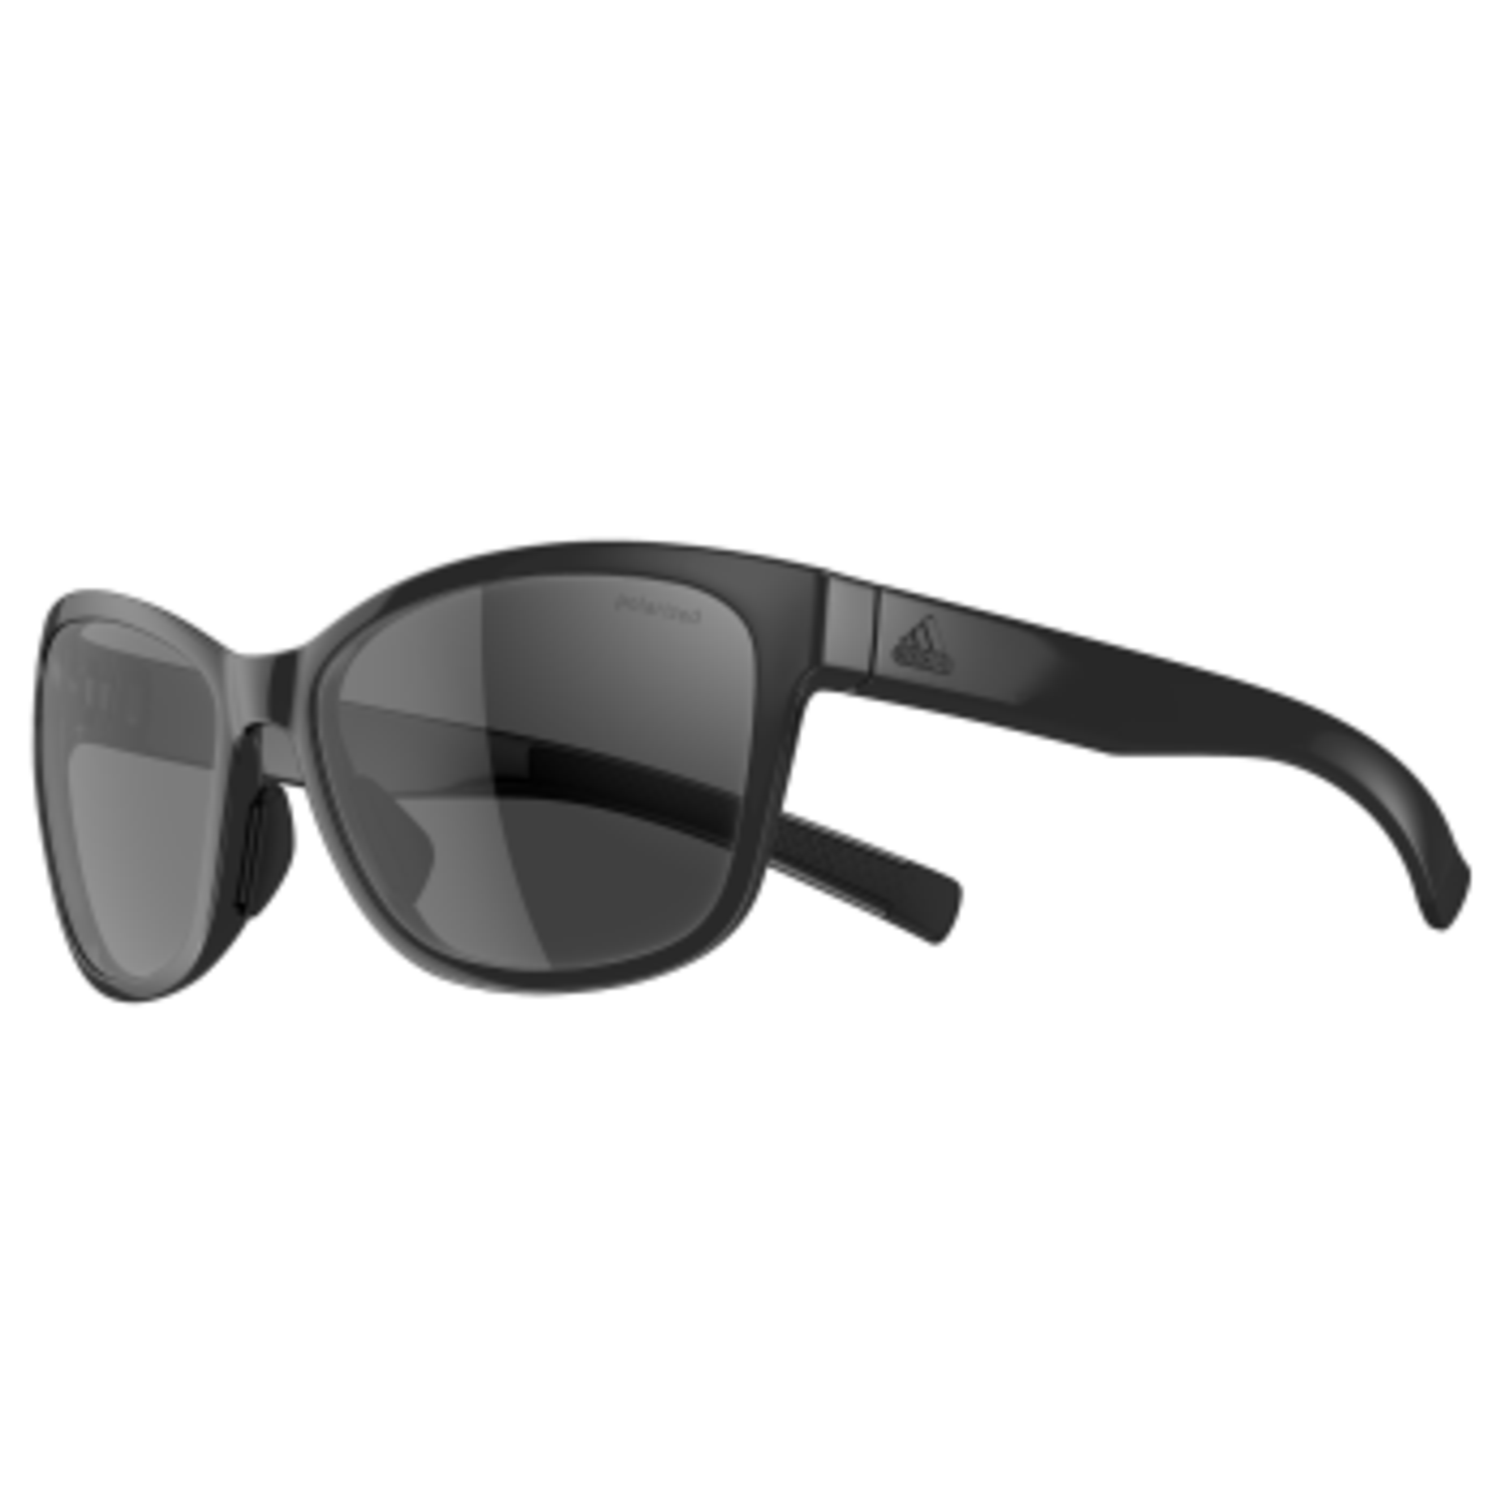 Sunglasses Adidas excalate a 428 A 6050